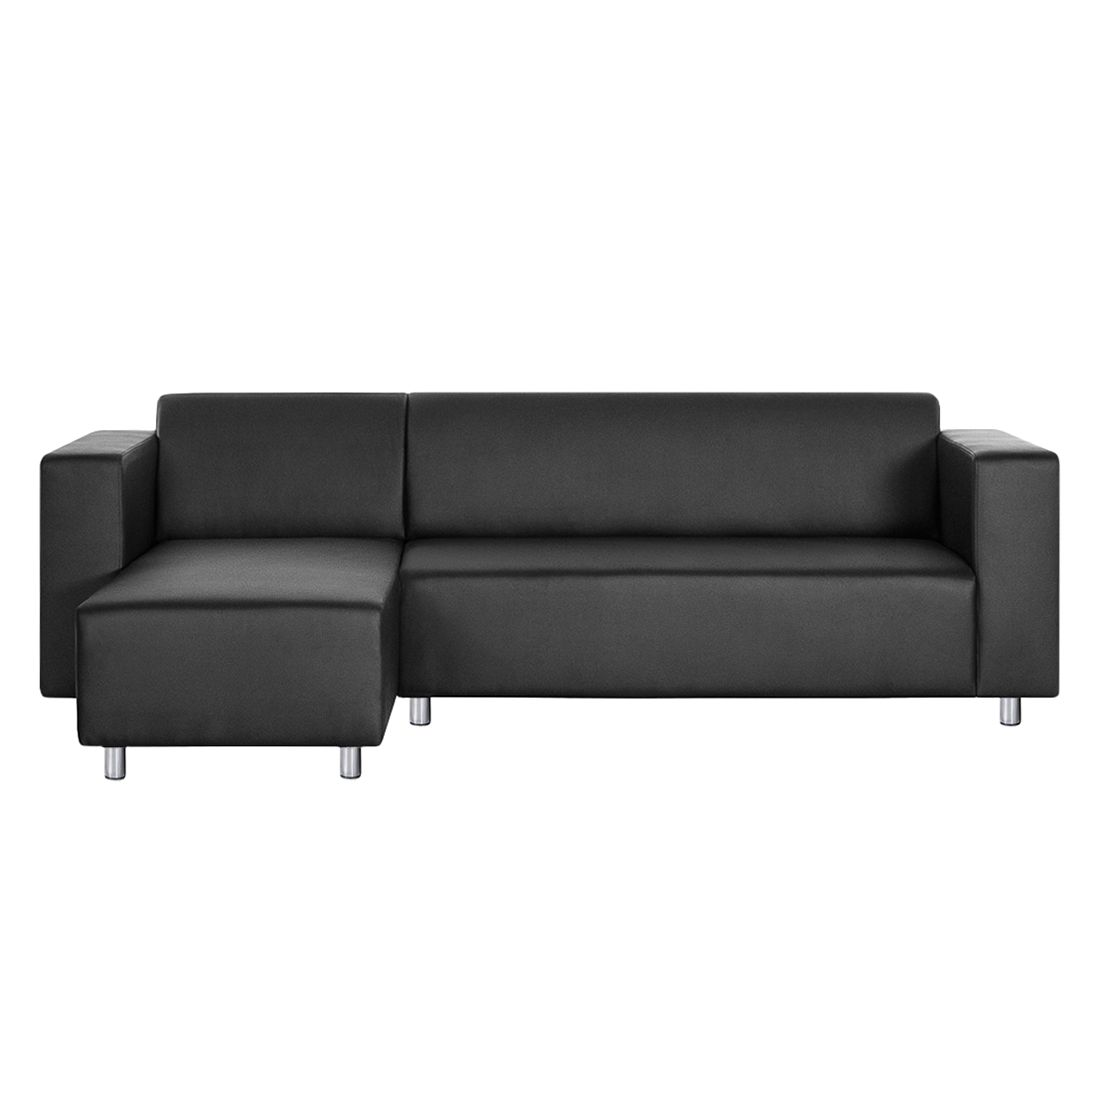 ecksofa kunstleder schwarz ecksofa nizza kunstleder schwarz home24 ecksofa schwarz kunstleder. Black Bedroom Furniture Sets. Home Design Ideas